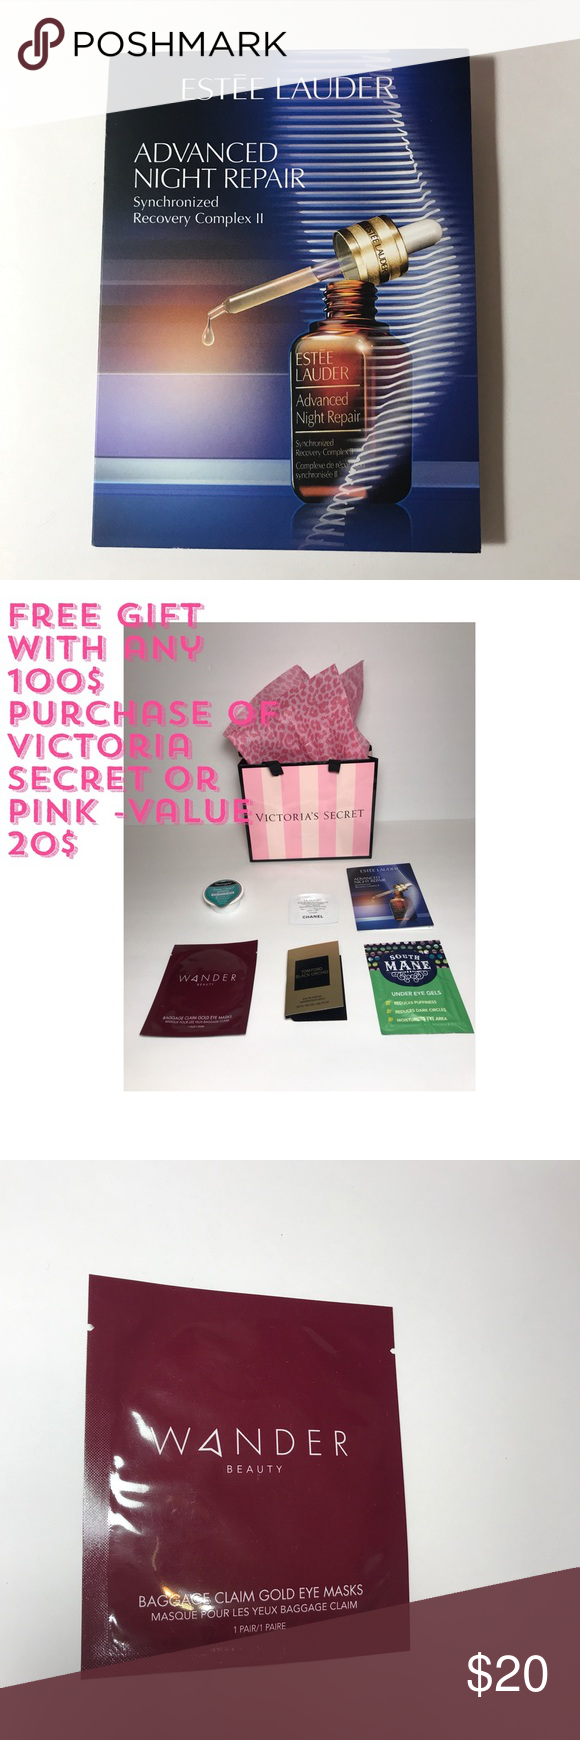 Free 🎁 with any purchase of 60 Value 20 Estée Lauder